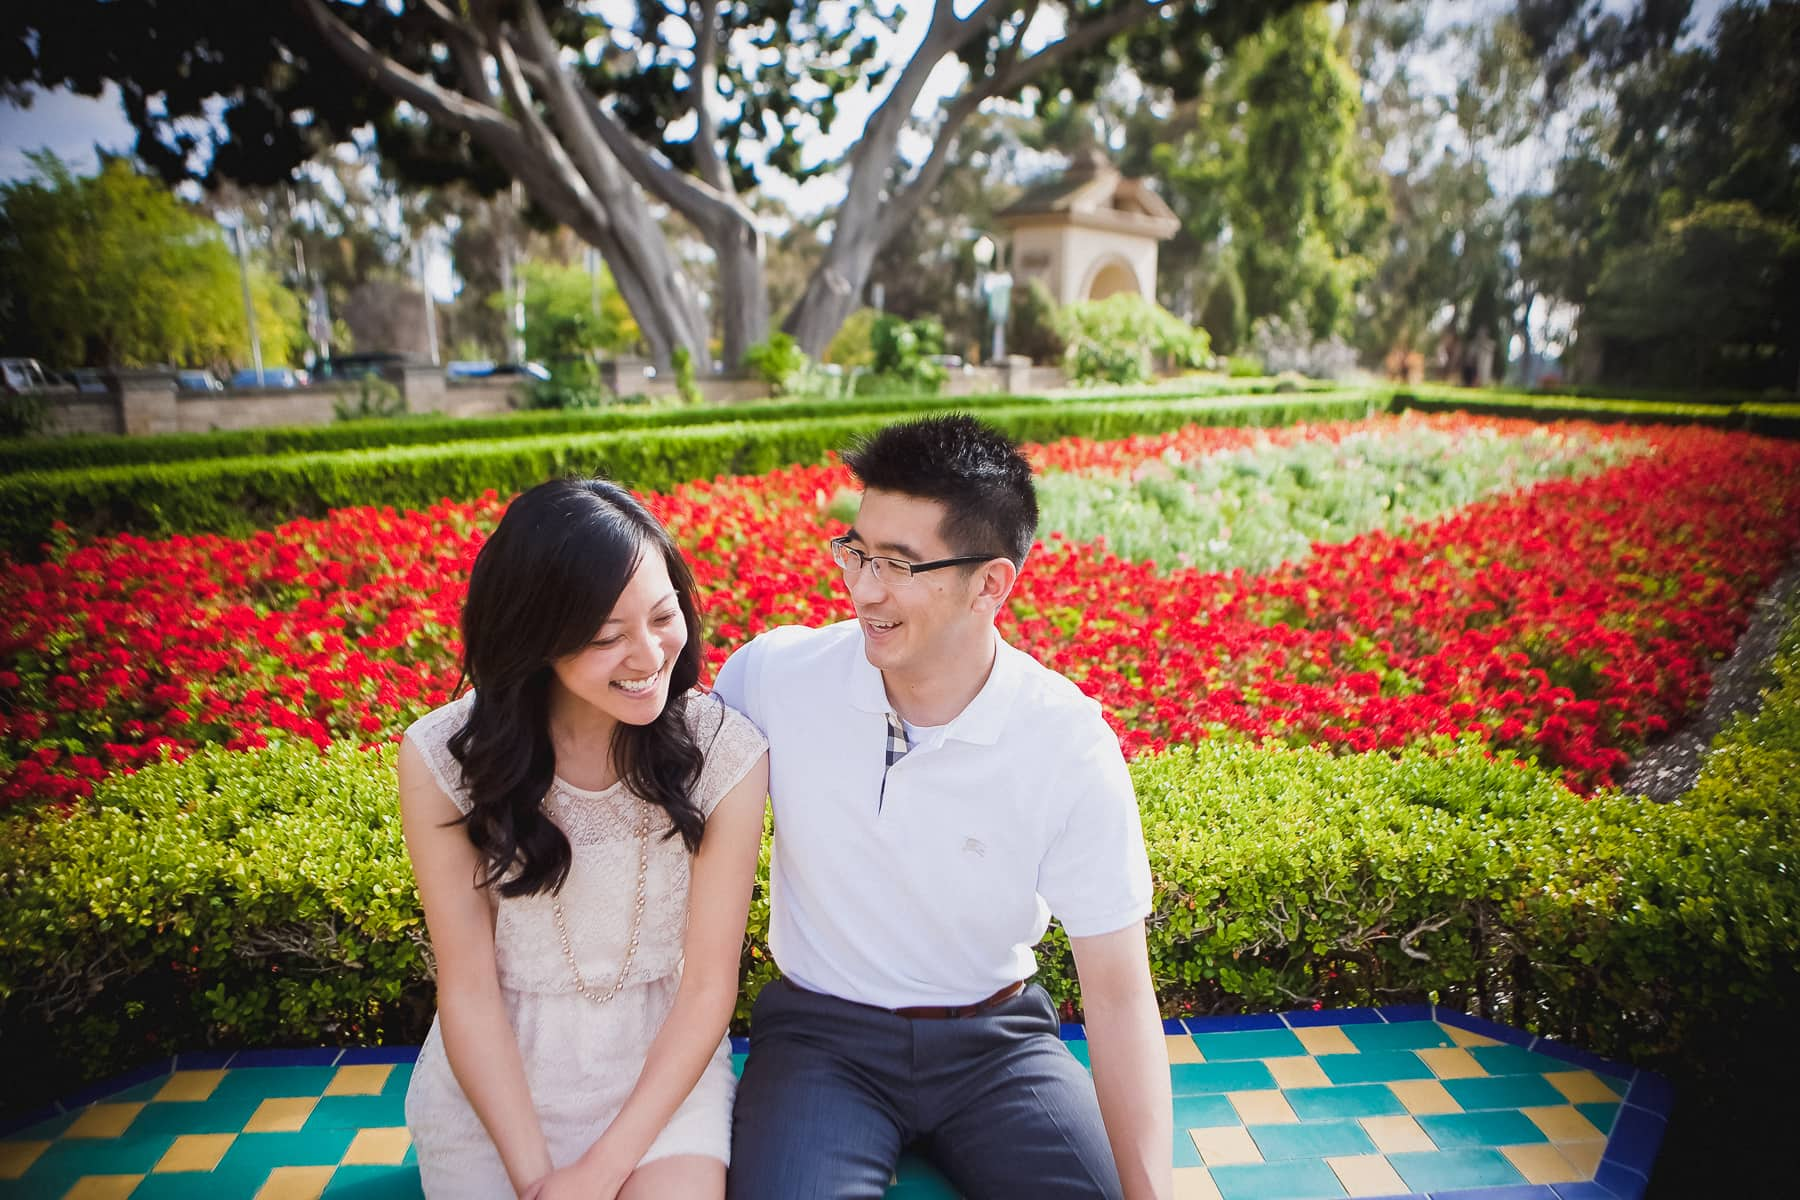 Engagement session at Balboa Park with red flowers and greenery